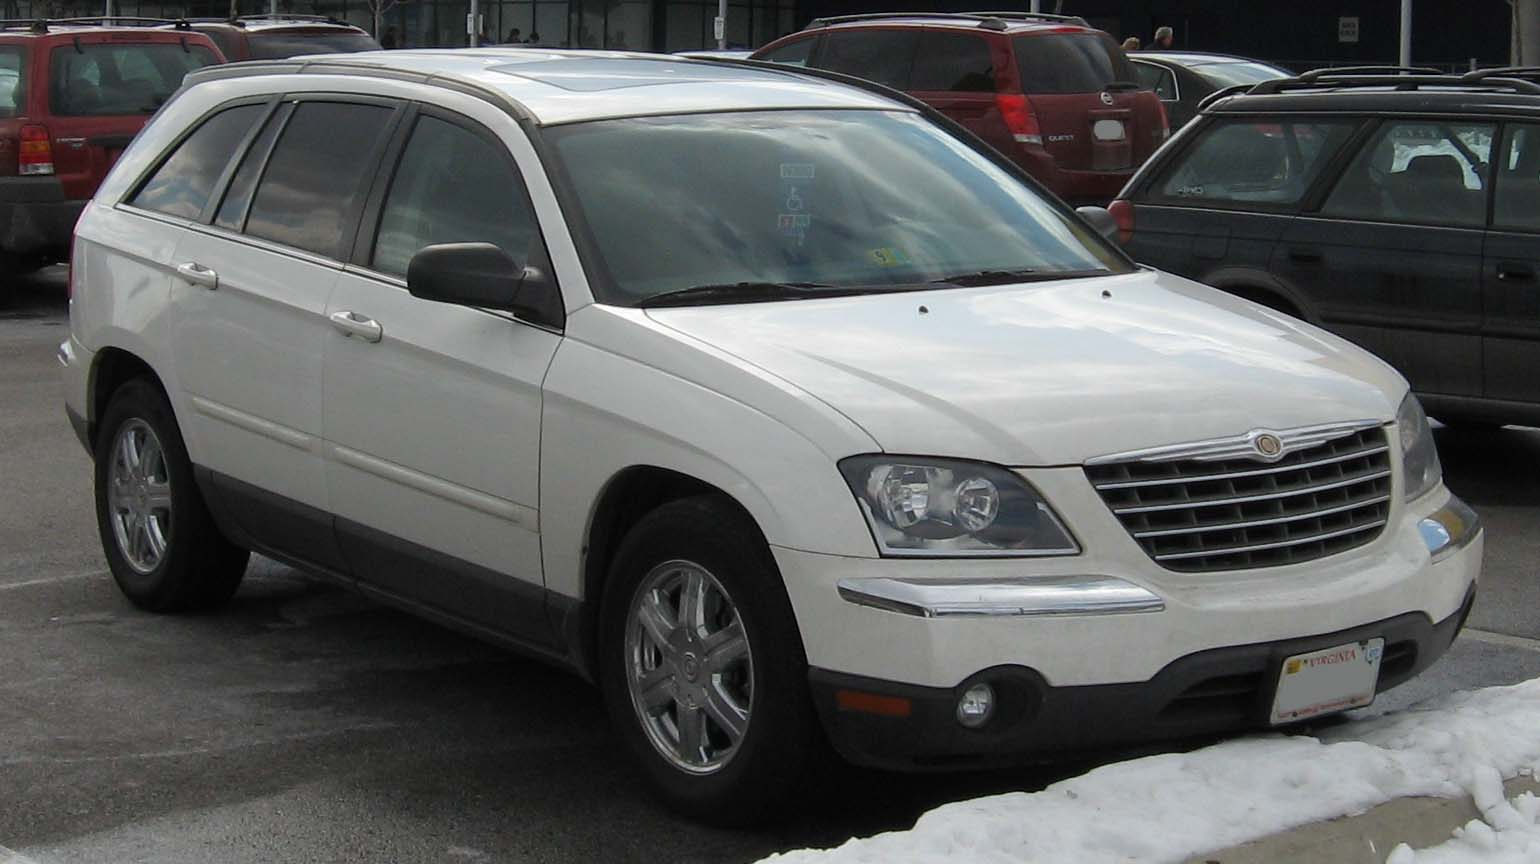 2004 chrysler pacifica information and photos zombiedrive. Black Bedroom Furniture Sets. Home Design Ideas